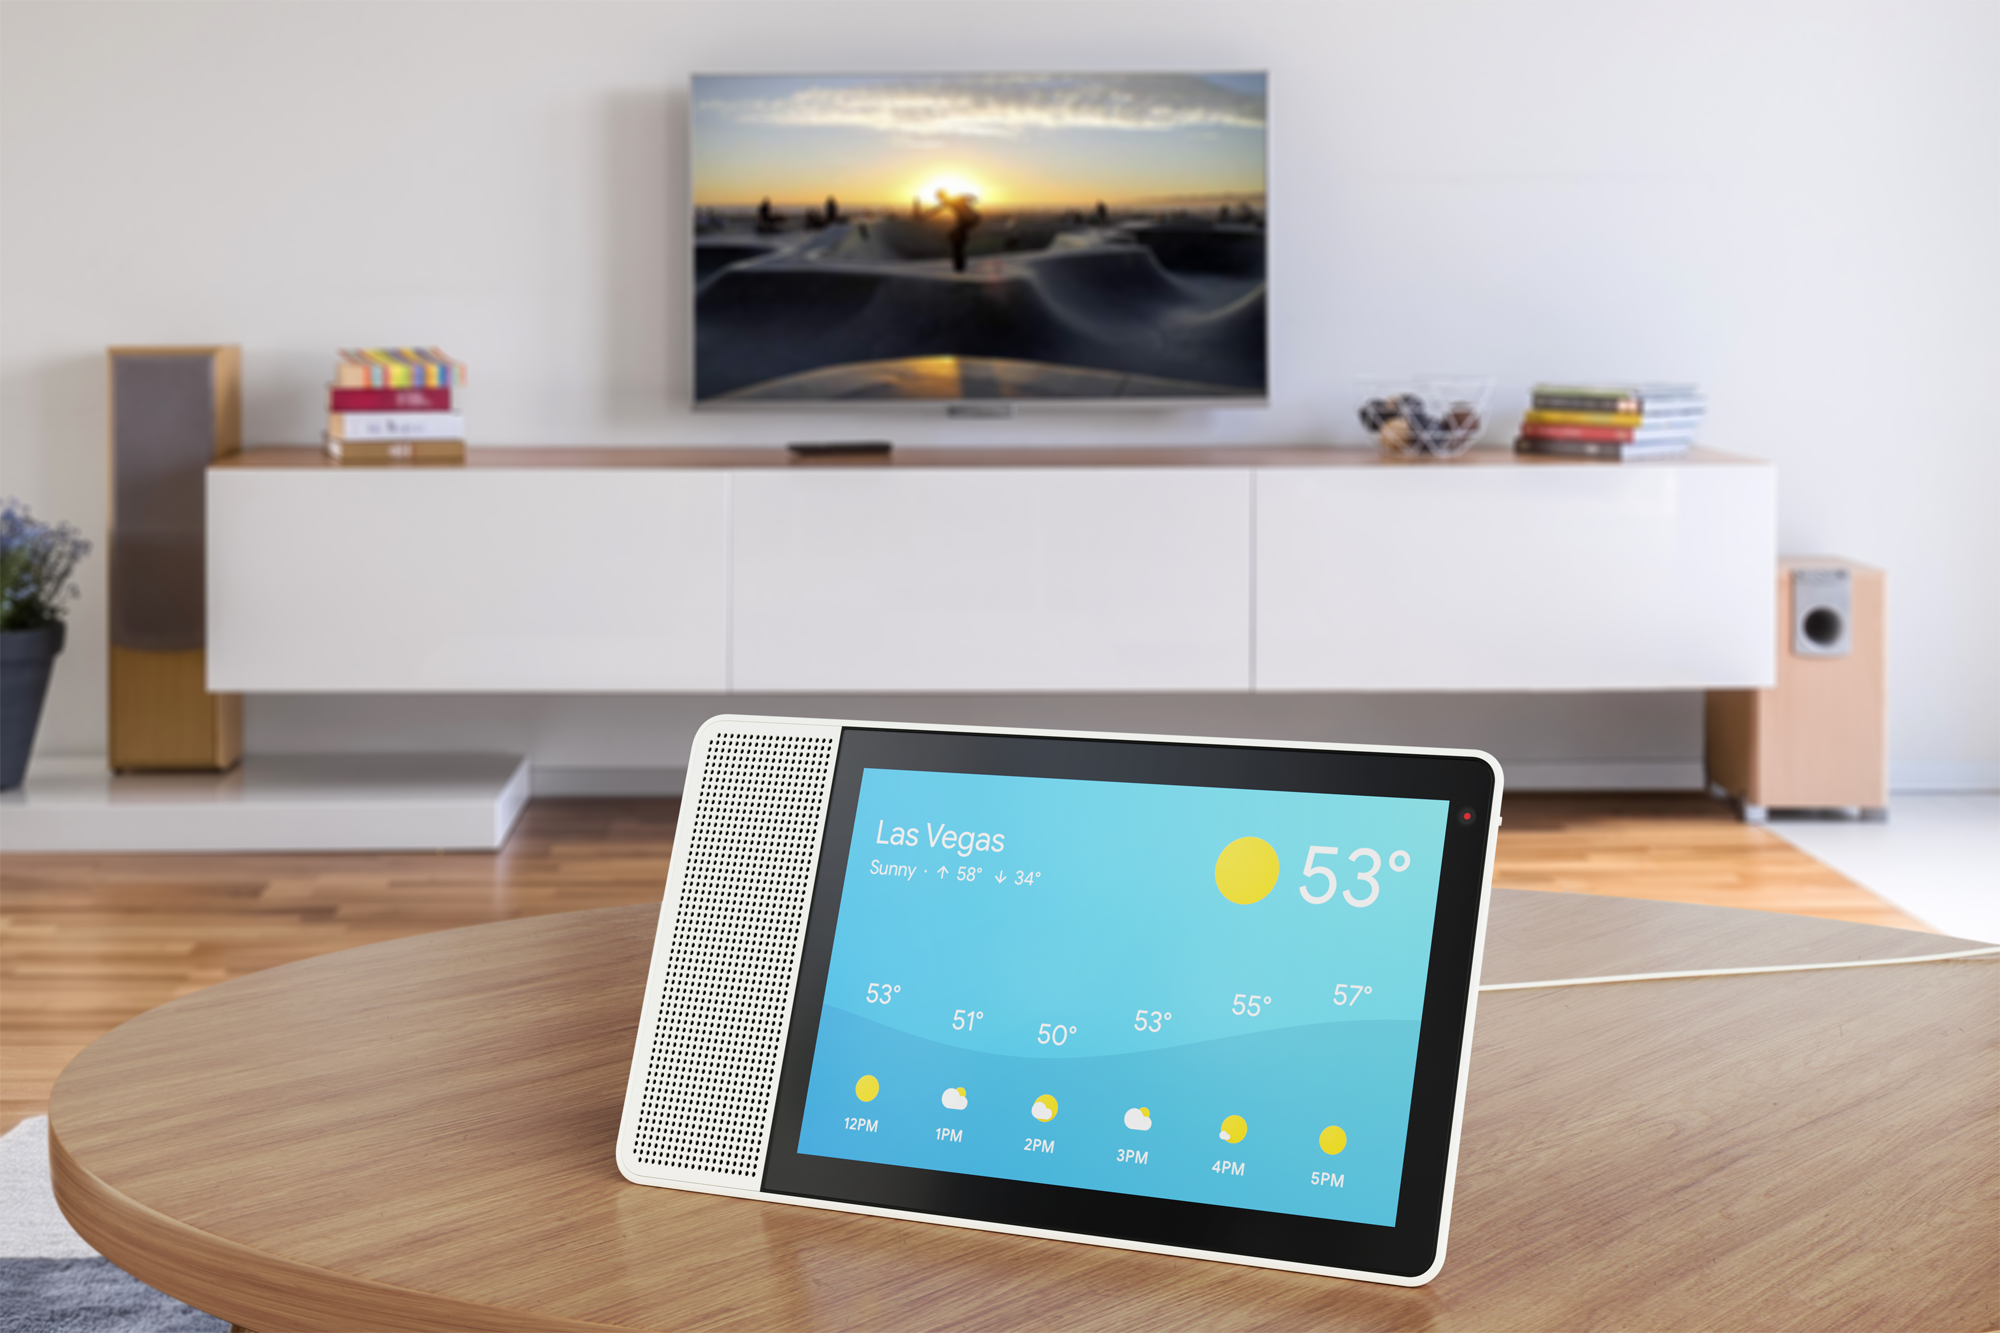 The Lenovo Smart Display includes support for the Google Assistant